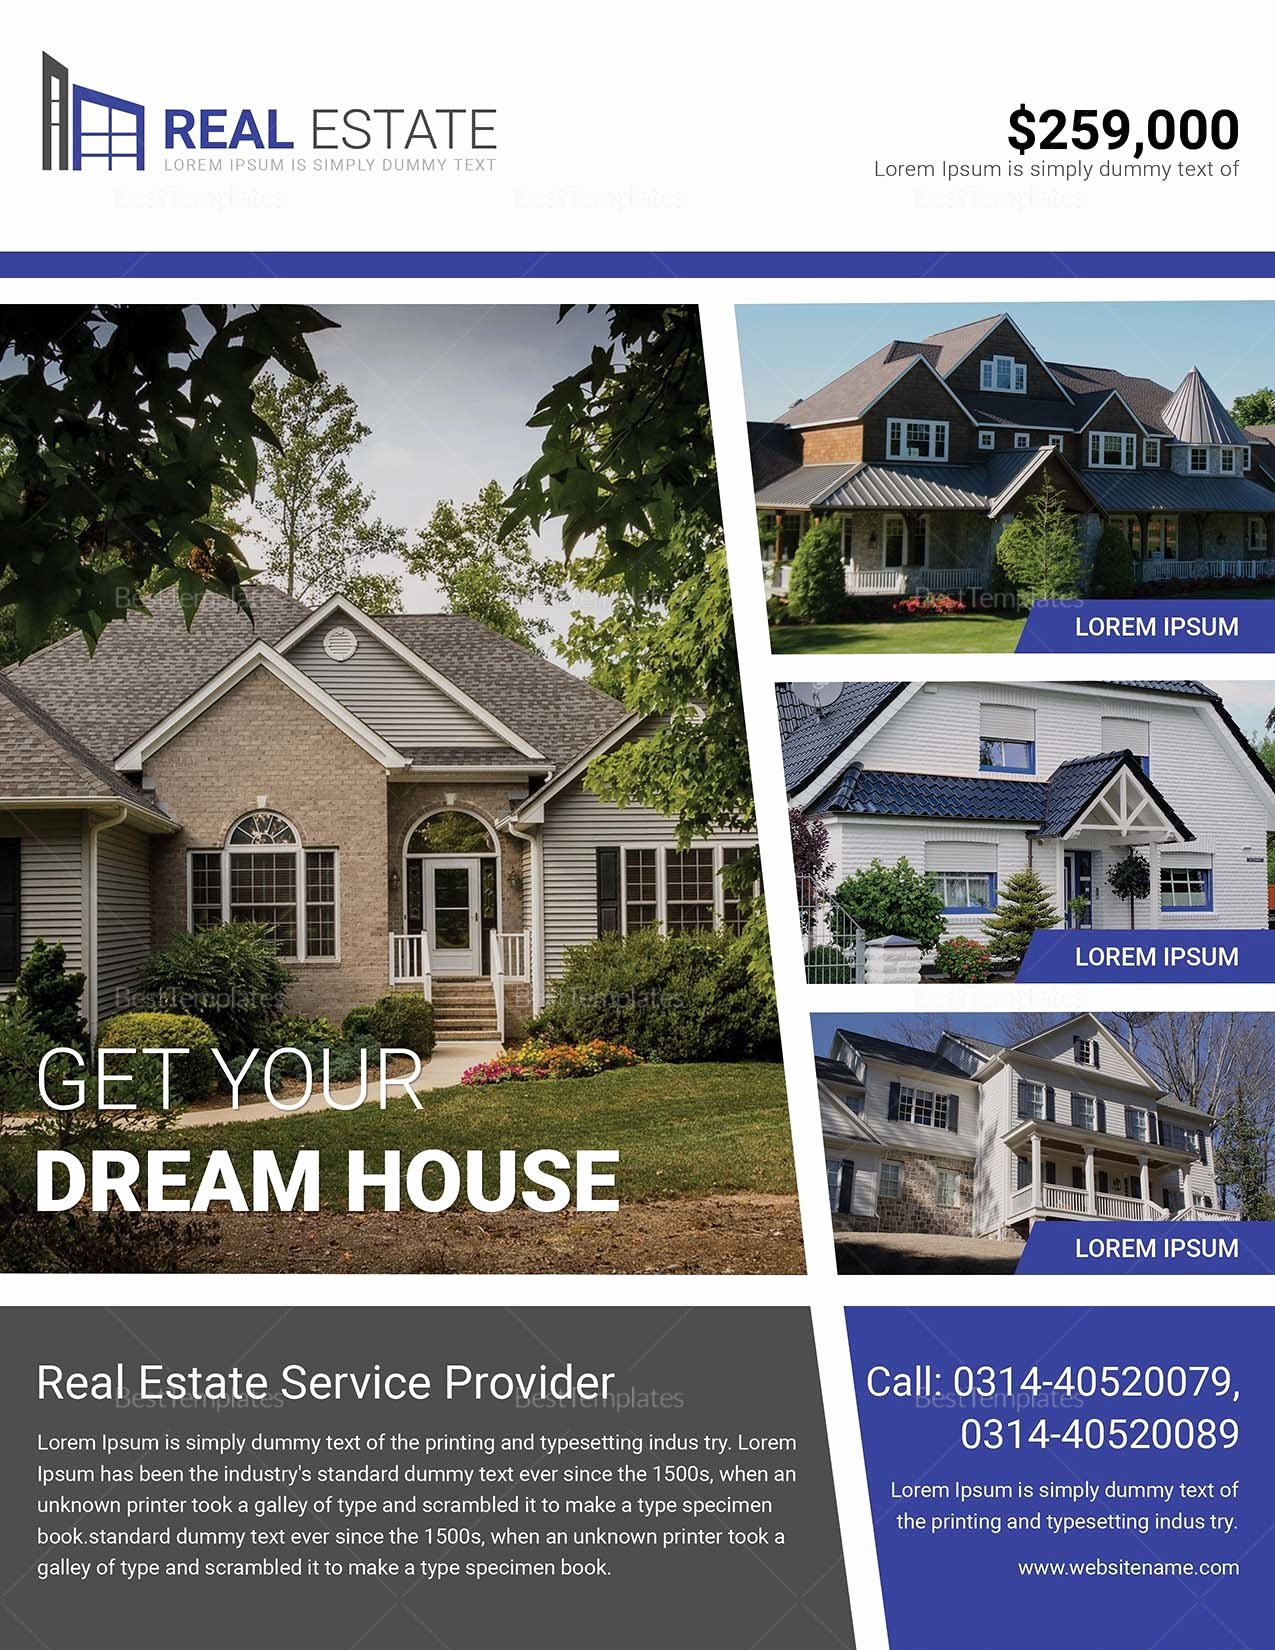 Real Estate Flyer Template Publisher Awesome Dream Home Real Estate Flyer Design Template In Word Psd